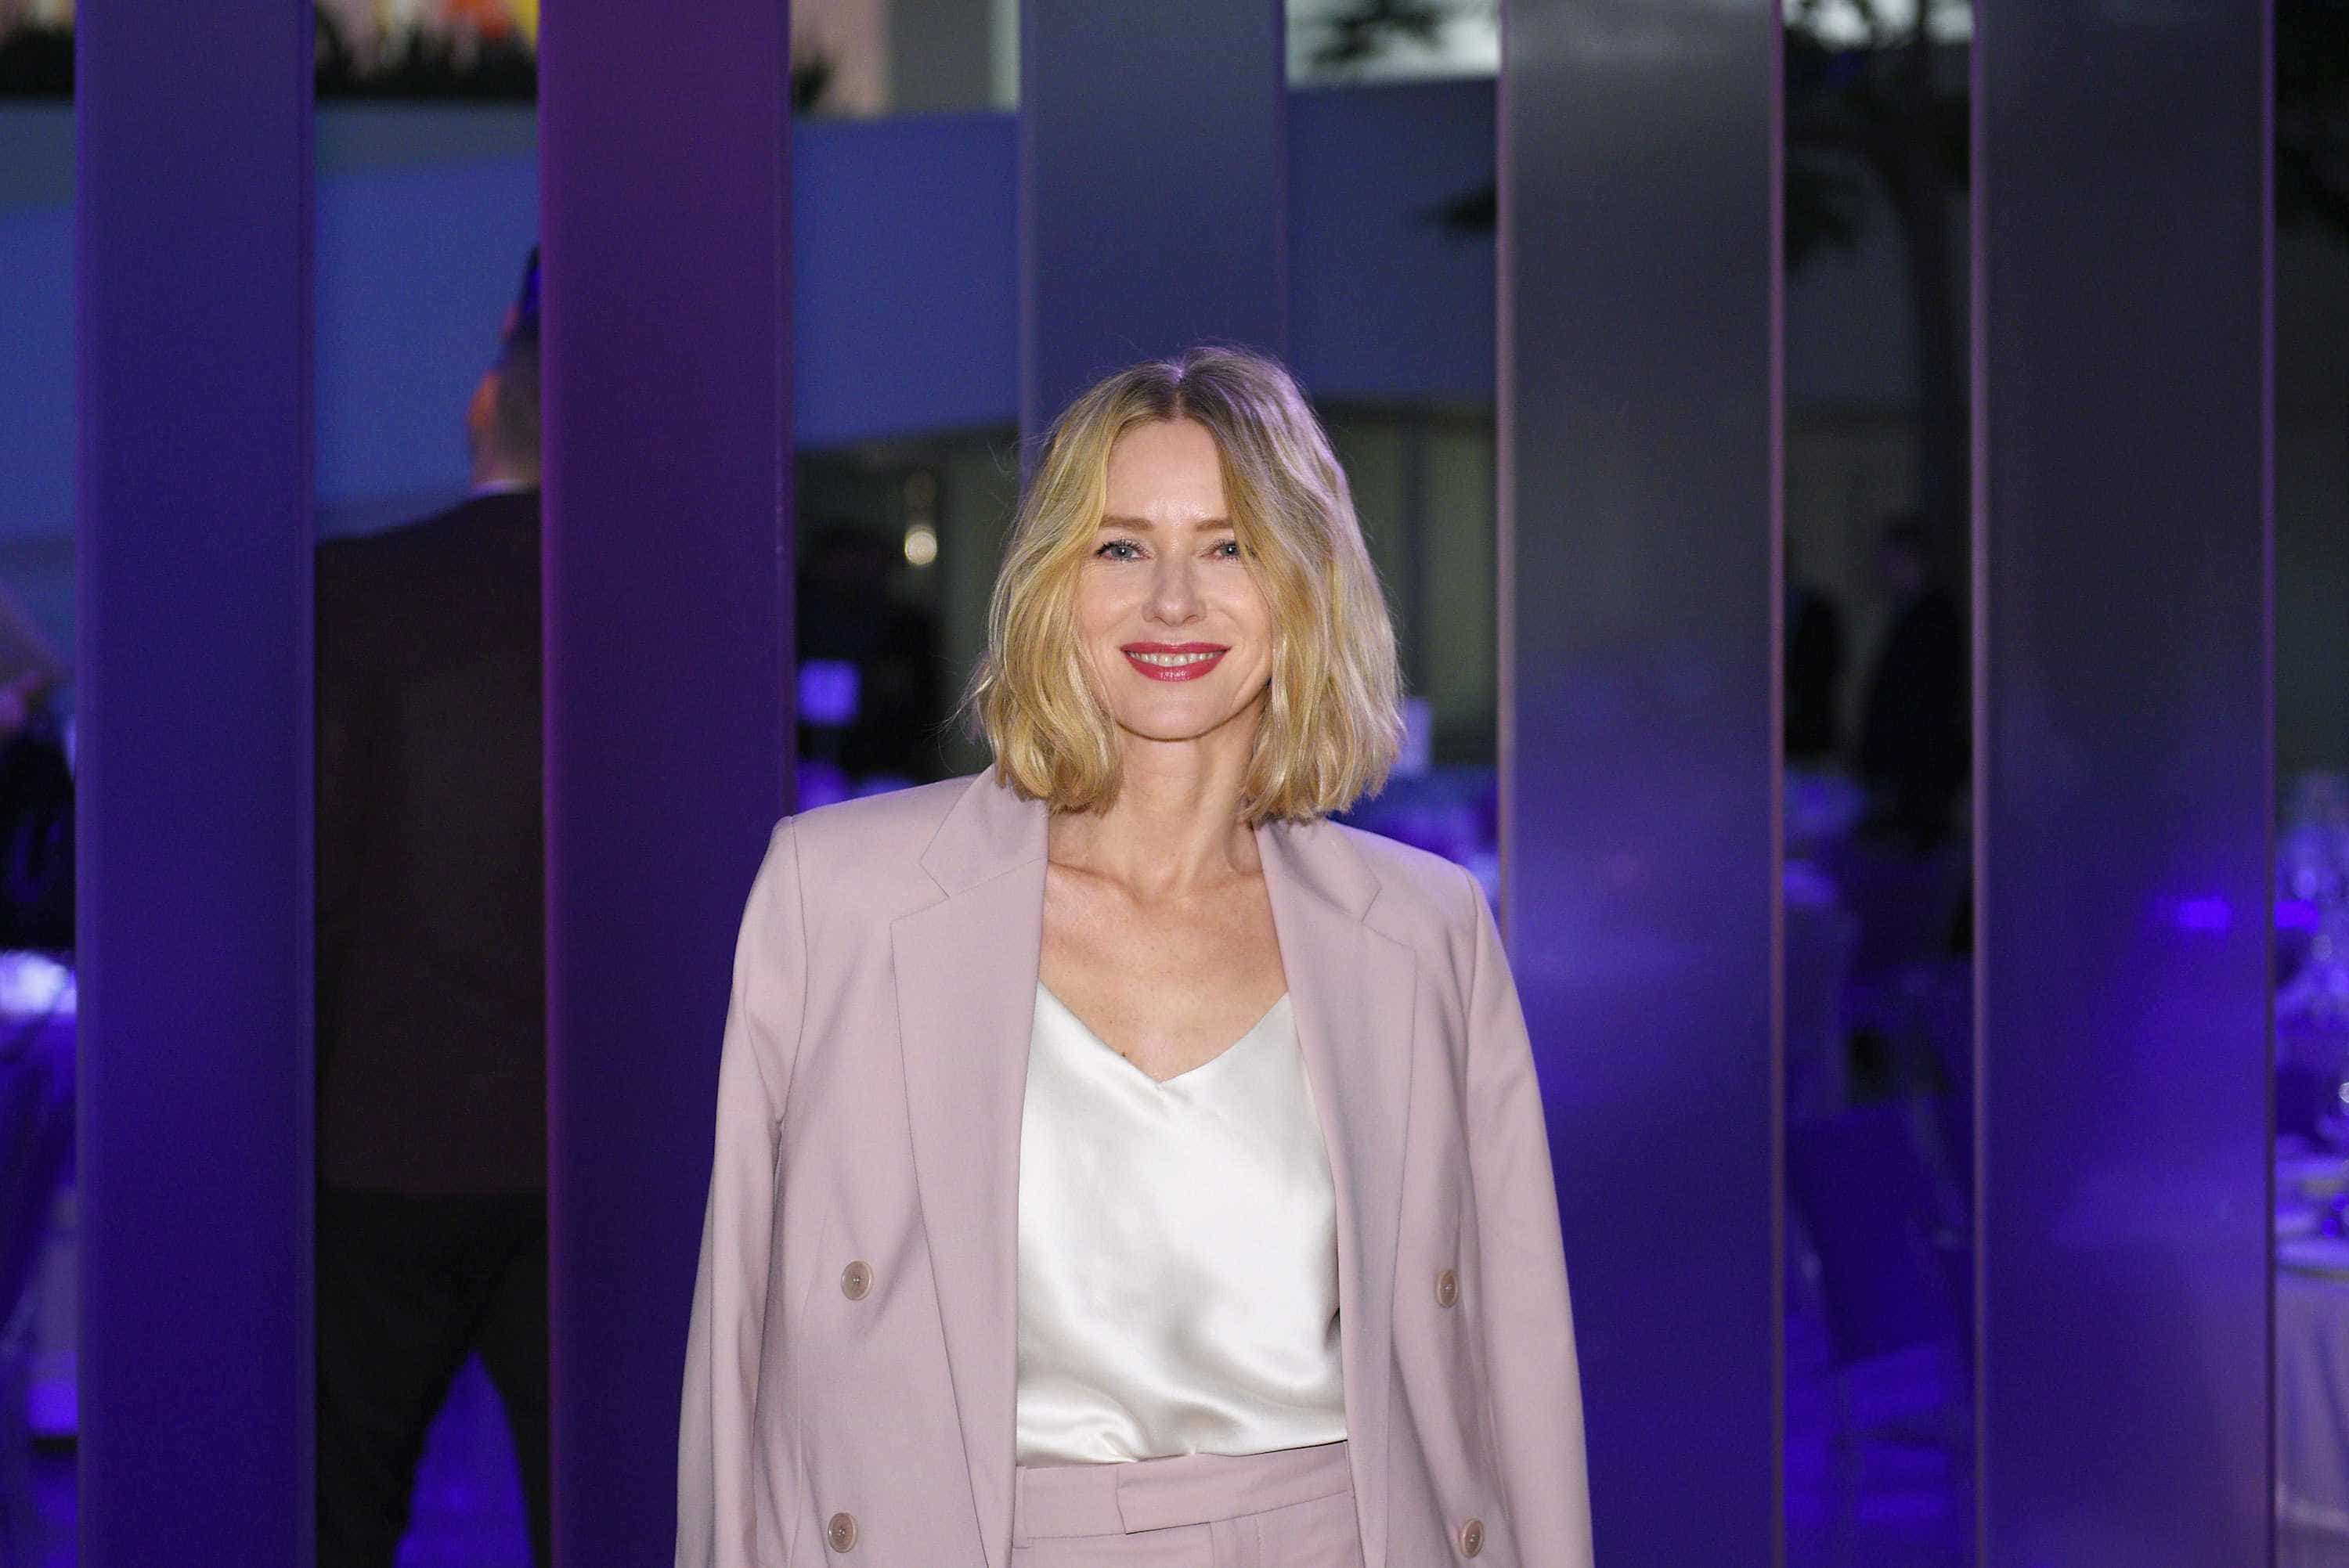 Naomi Watts estará em nova série do universo de 'Game of Thrones'